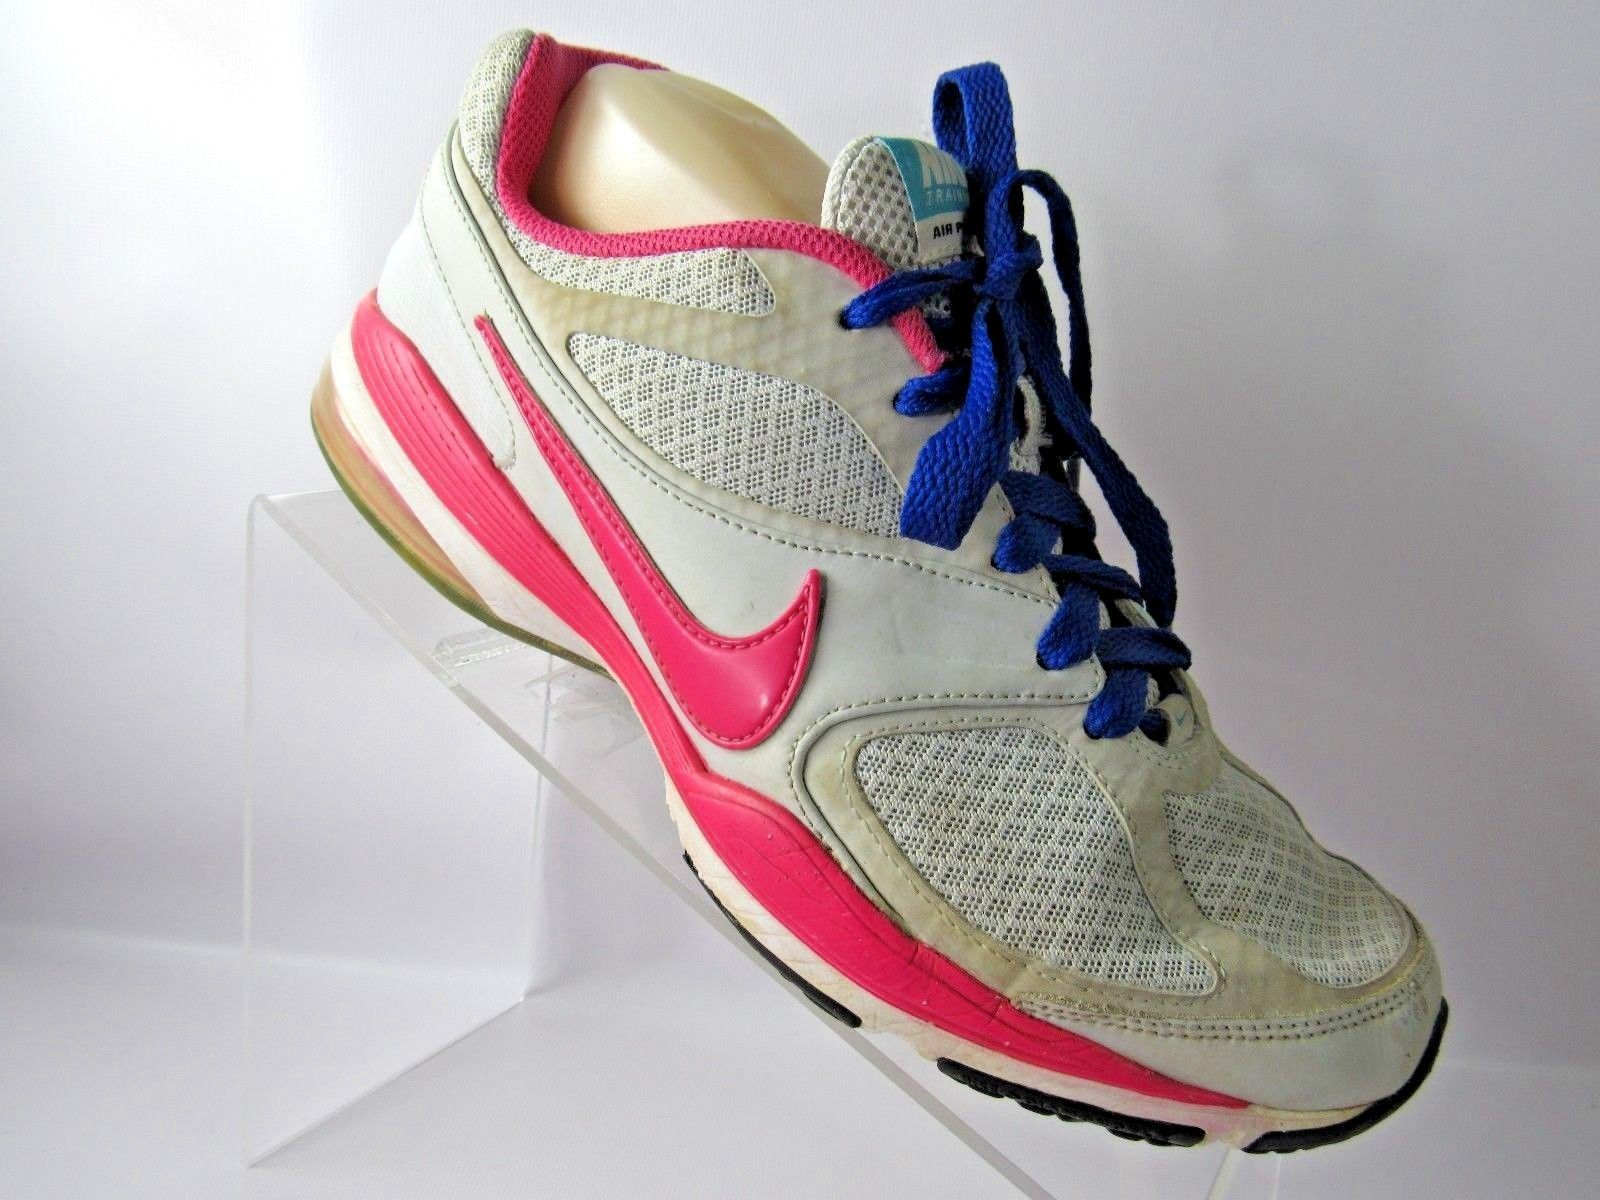 88fe99ddff8 Nike Air Max Prosper 508637-064 Size 9M Pink blue Gray Running Shoes For  Women